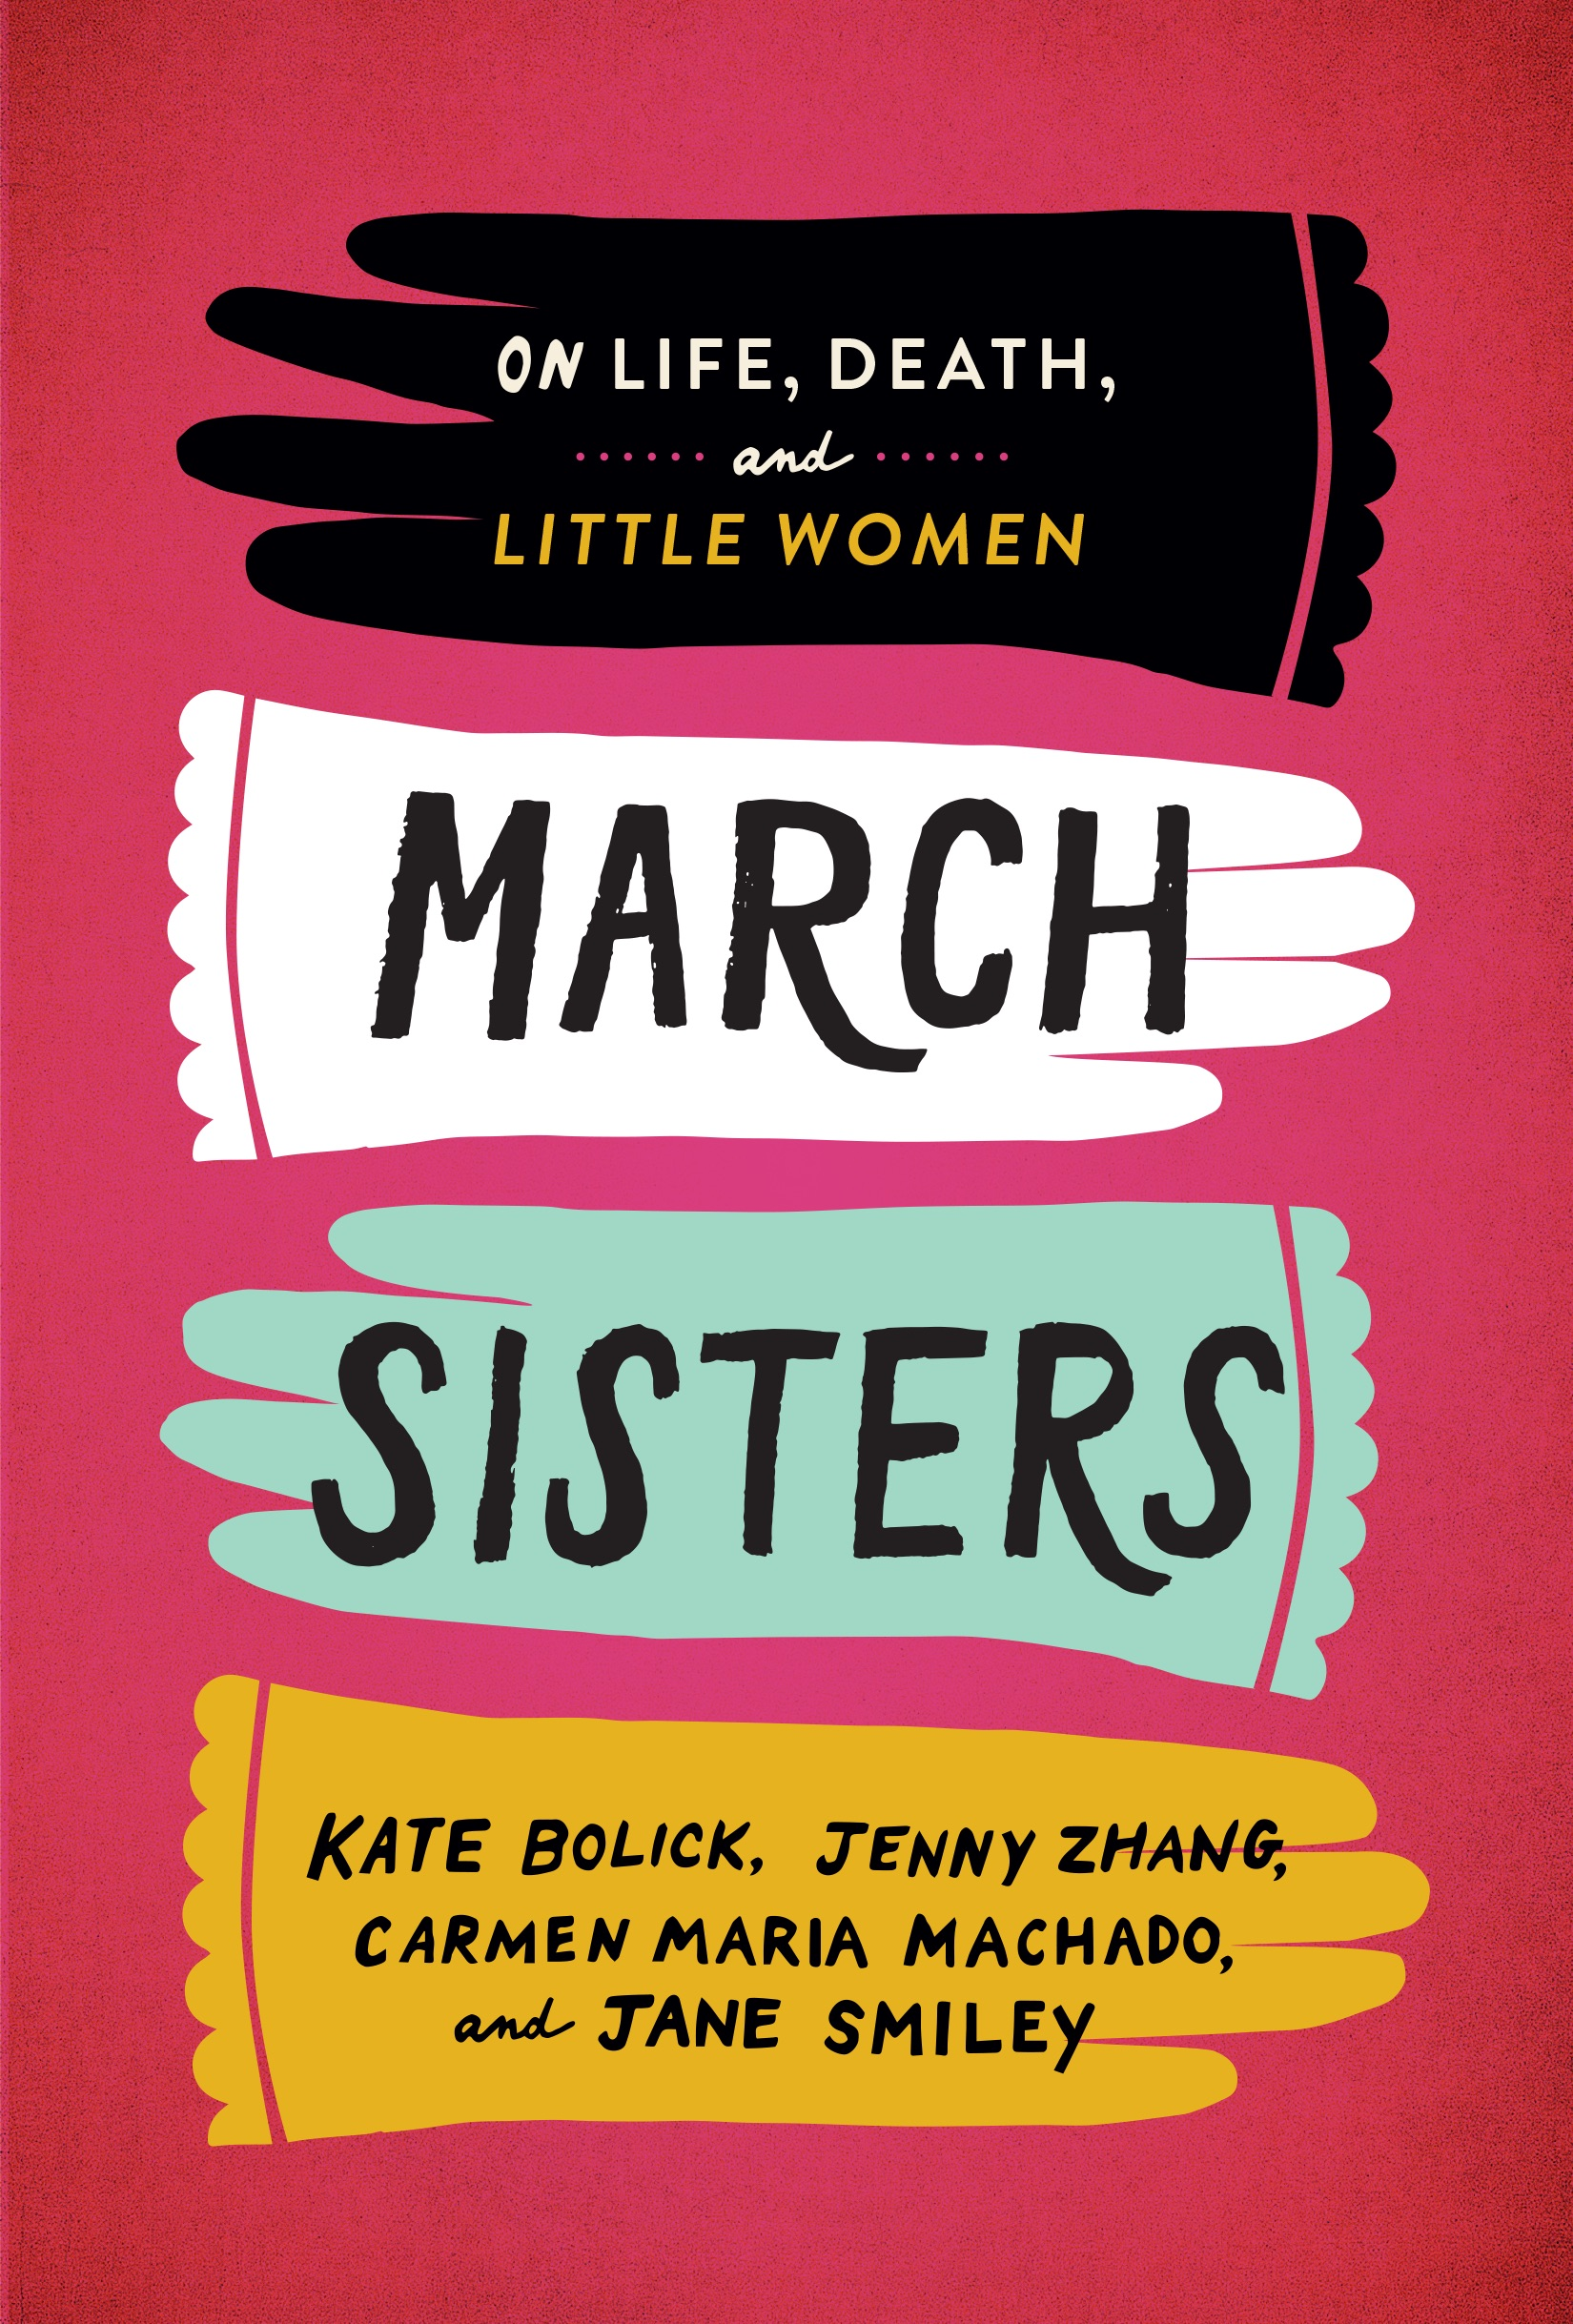 "- Coming August 2019 from the Library of America, available wherever books are sold. To place a pre-order, click HERE.""In this thoughtful essay collection, four contemporary authors explore their relationships to the title characters of Louisa May Alcott's Little Women…. Any readers who have ever compared themselves to Meg, Jo, Beth, or Amy—or to all four—will enjoy seeing Alcott's much-loved classic through these alternate perspectives.""—Publishers Weekly""Fresh readings of a much-loved classic.""—Kirkus Reviews"